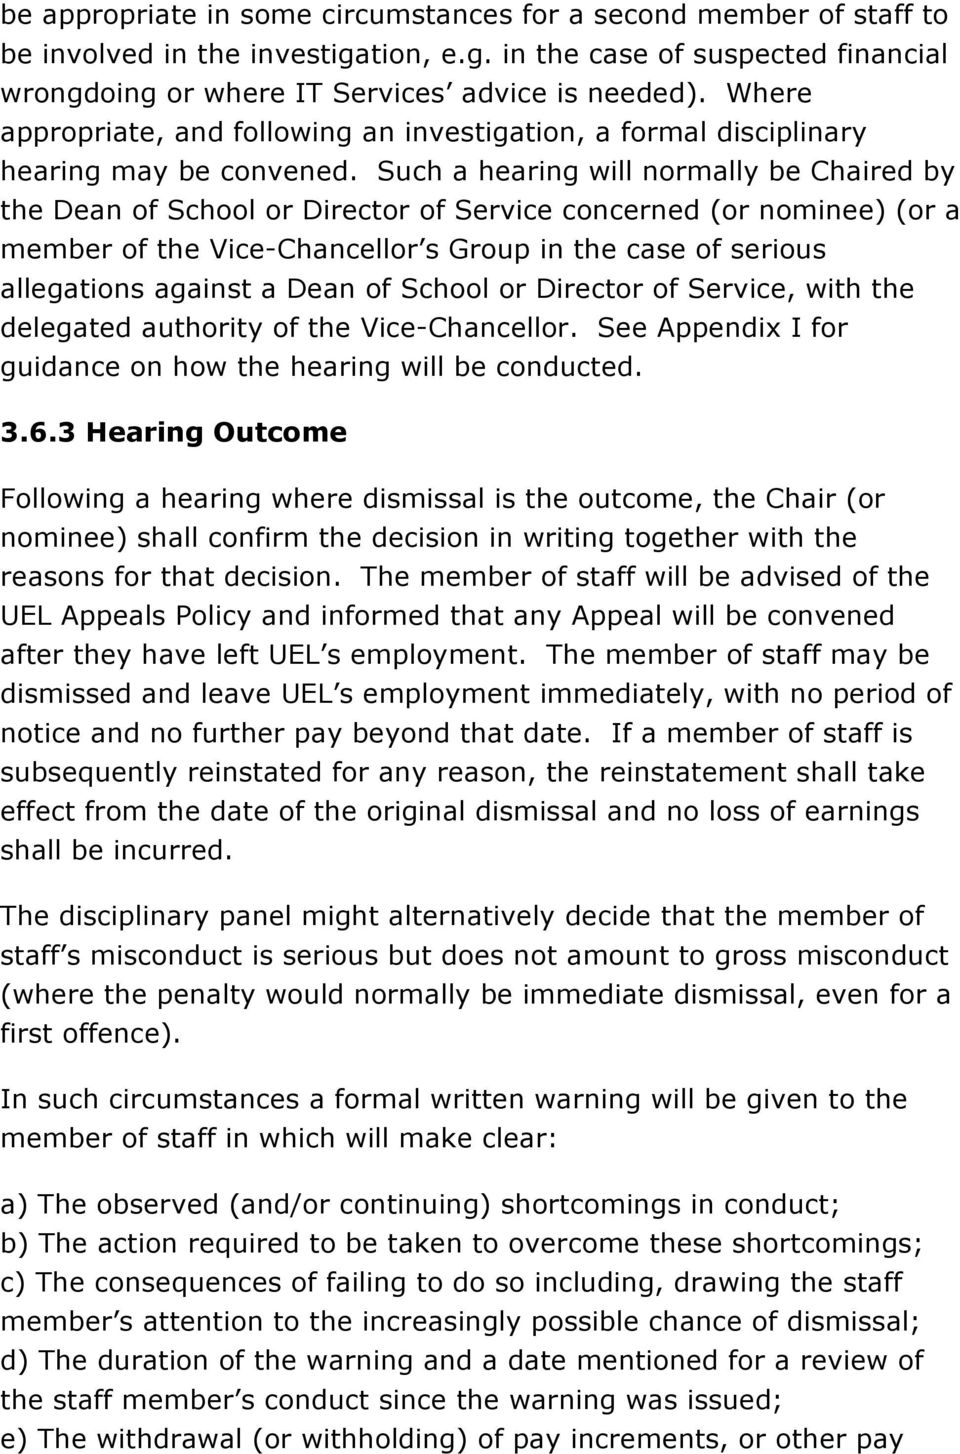 Such a hearing will normally be Chaired by the Dean of School or Director of Service concerned (or nominee) (or a member of the Vice-Chancellor s Group in the case of serious allegations against a